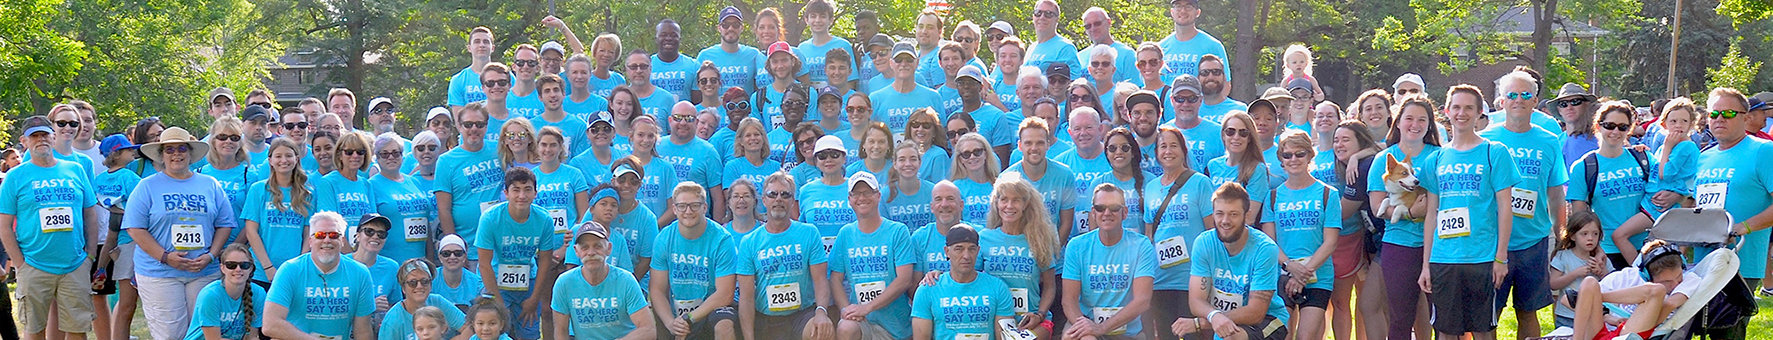 Team Easy E Donor Dash